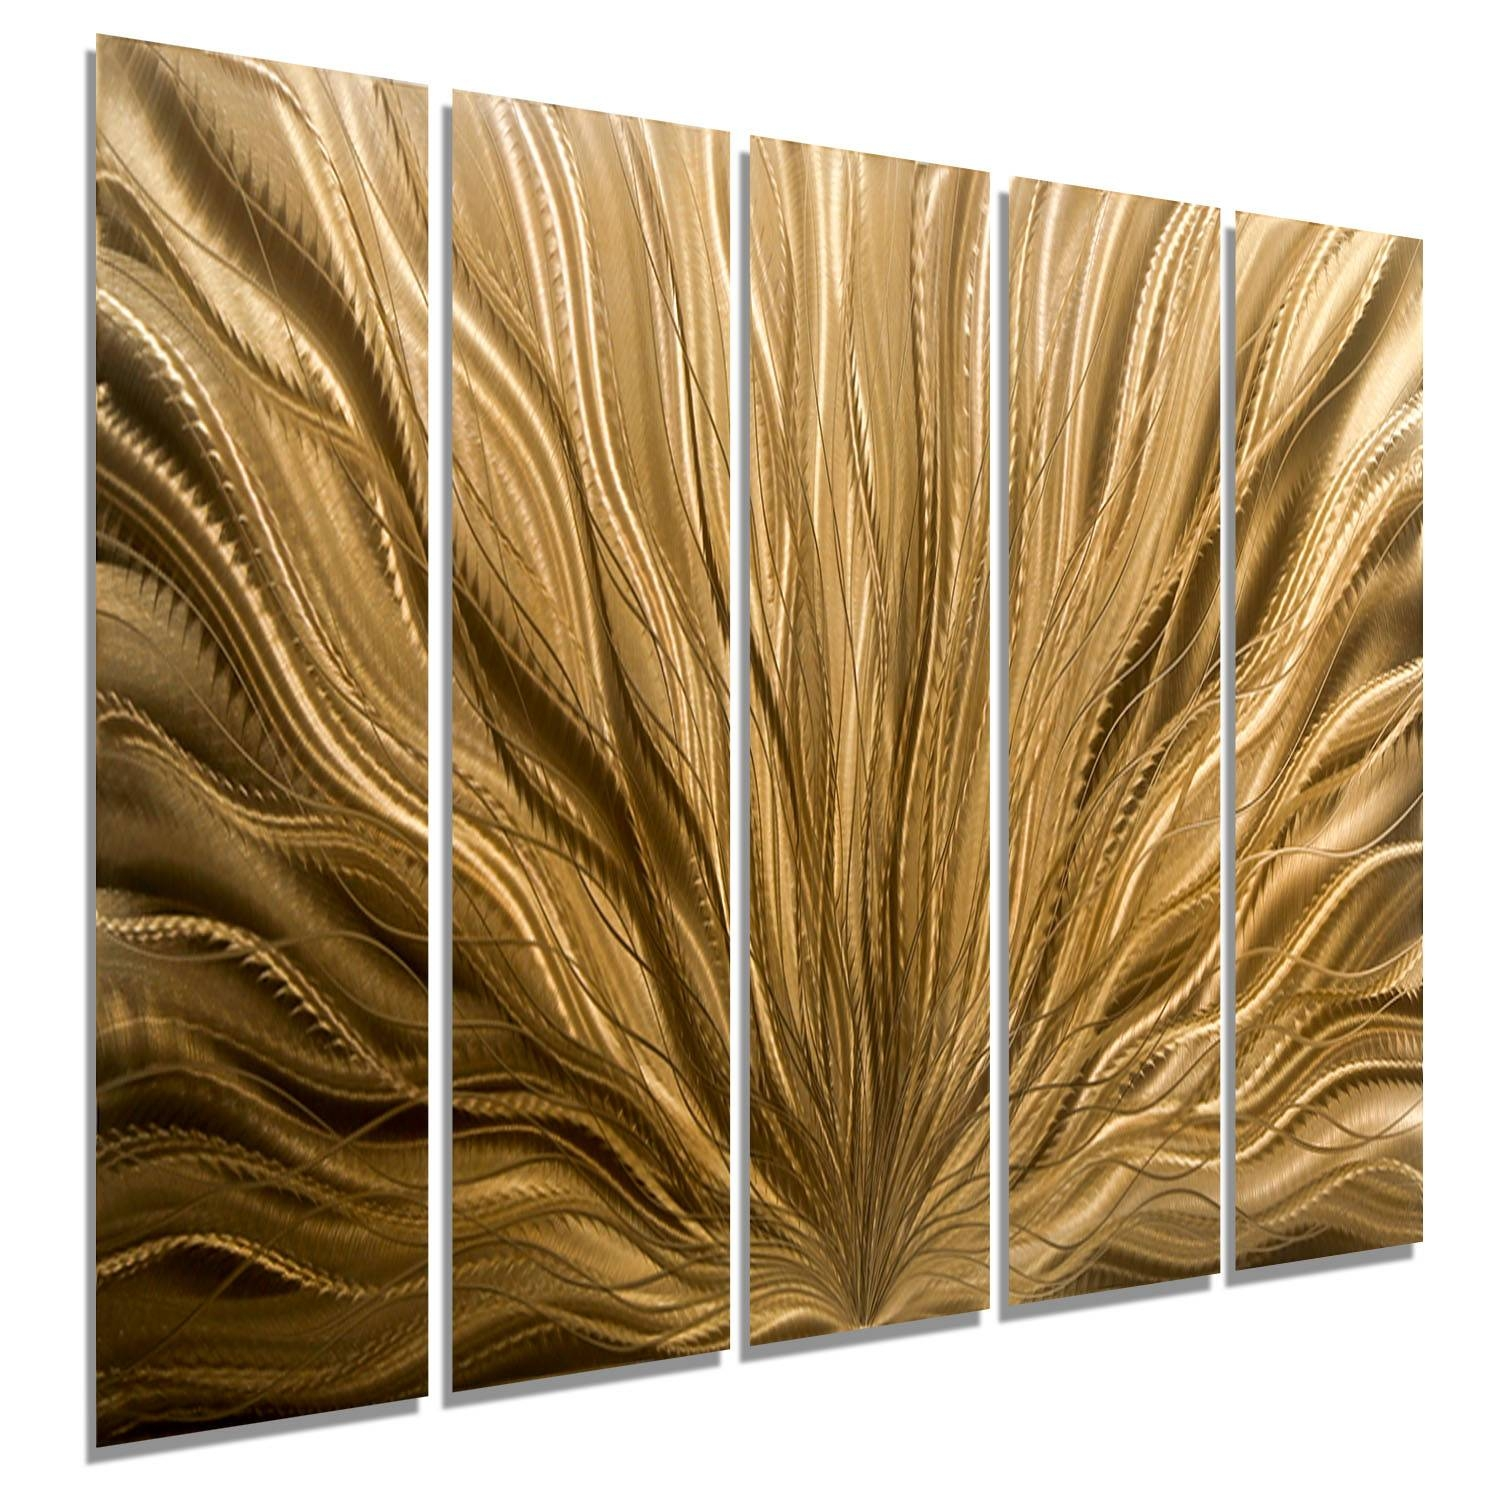 Copper Plumage Epic – Extra Large Light Copper Abstract Metal Wall Throughout Newest Big Metal Wall Art (View 4 of 15)